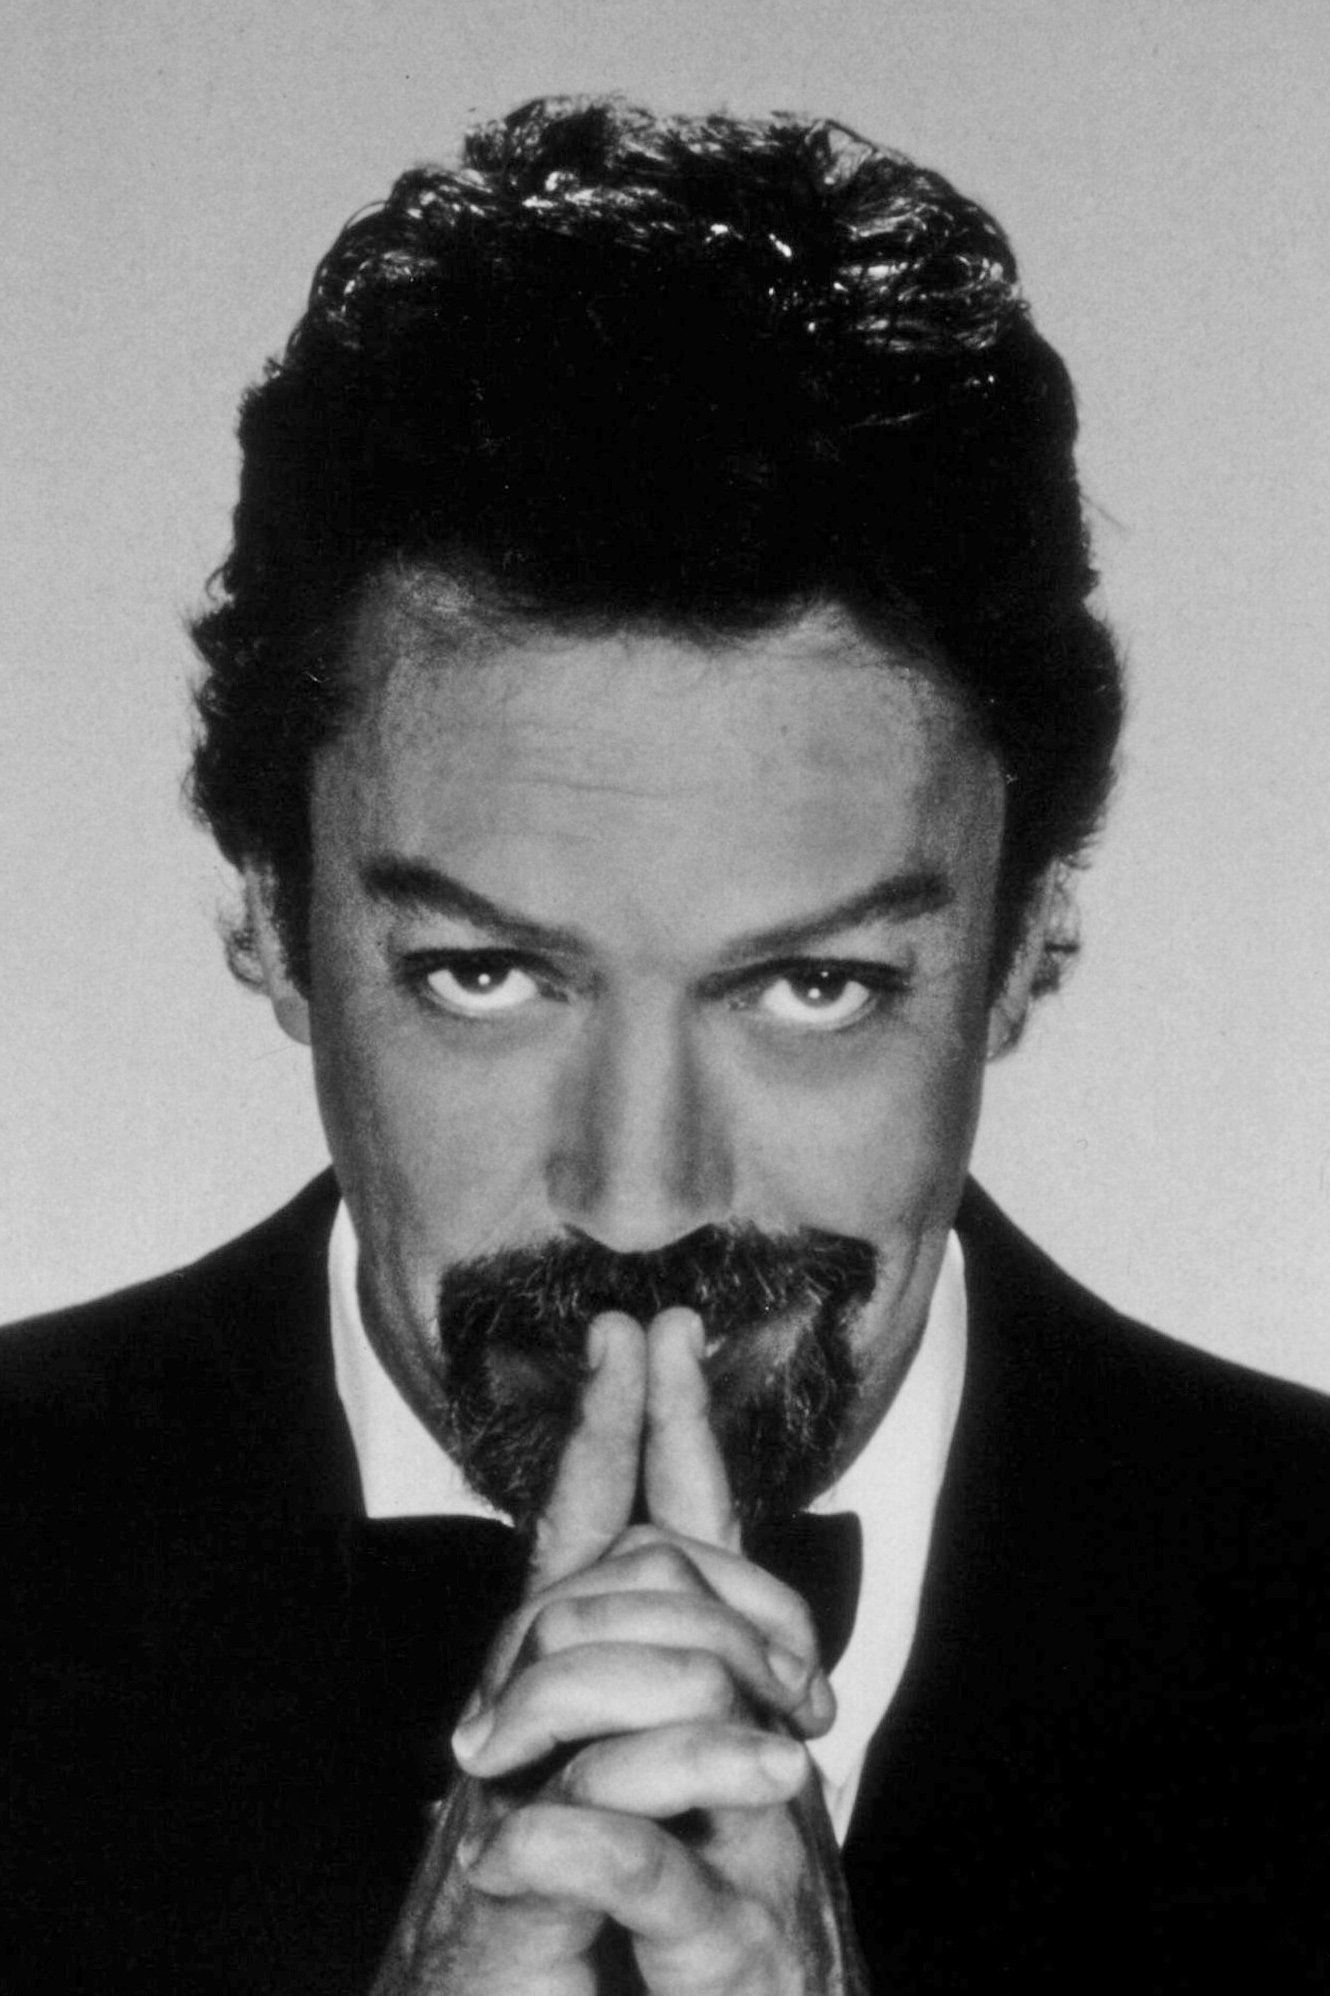 Tim Curry (born 1946) nudes (69 photo), Pussy, Bikini, Selfie, cleavage 2015